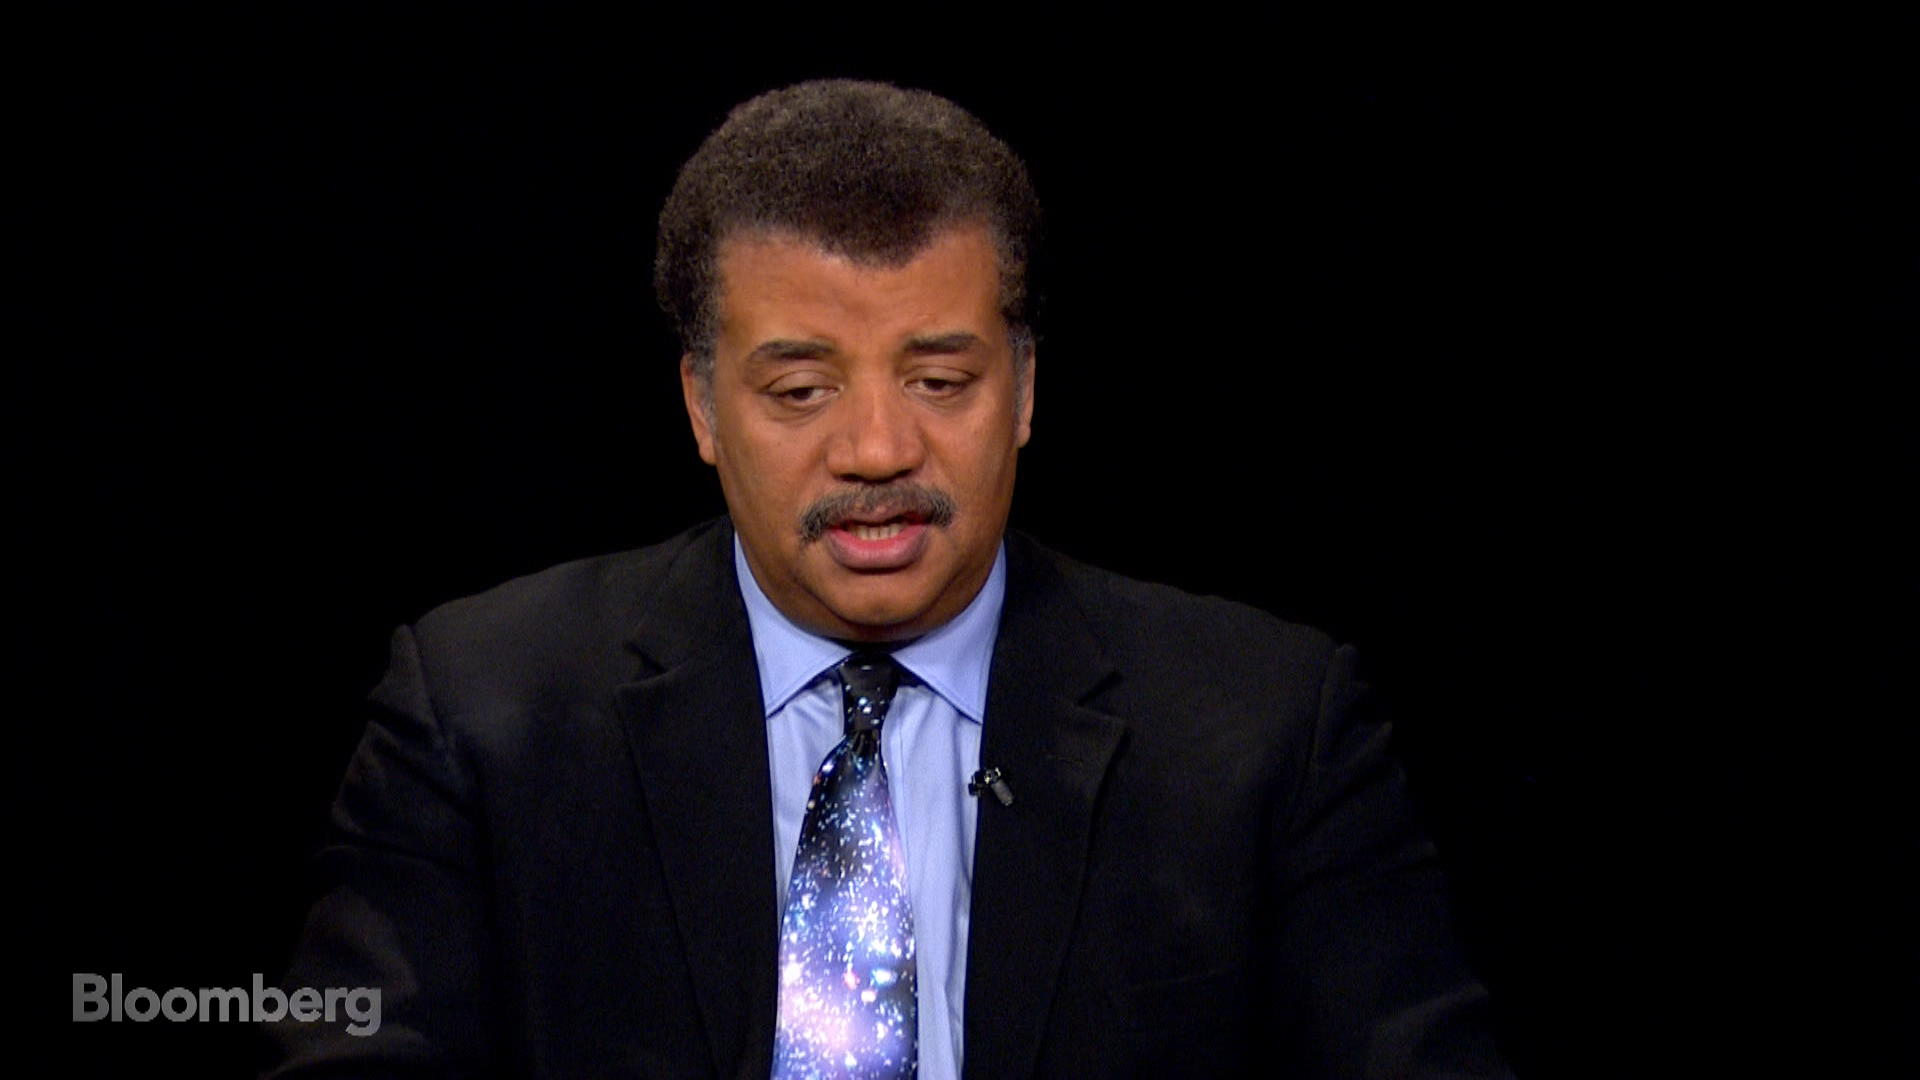 'Astrophysics for People in a Hurry': Charlie Rose